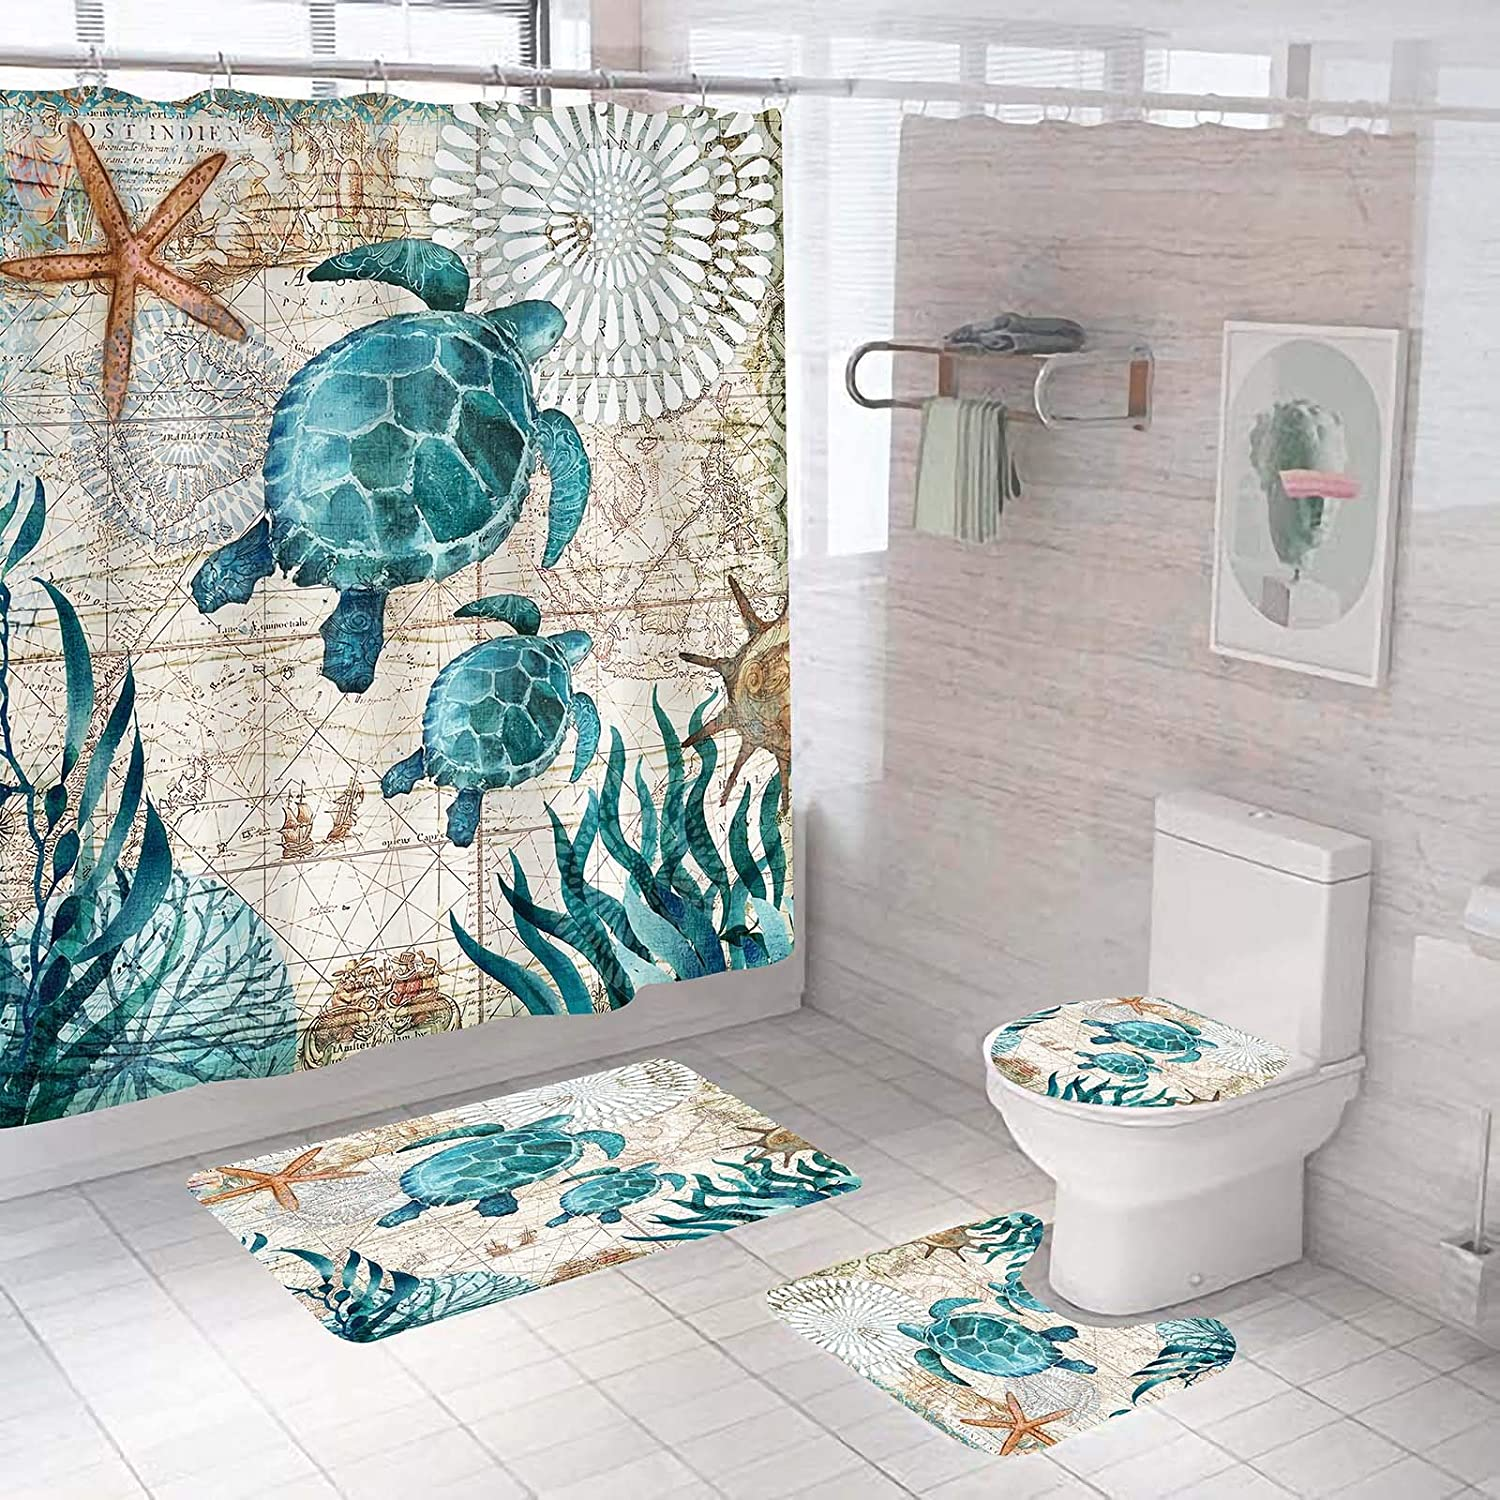 4 Piece Sea Turtles Shower Curtain Sets with Non-Slip Rug,Toilet Lid Cover,Bath Mat,12 Hooks,Nautical Green Sea Beach Decor Waterproof Shower Curtains for Bathroom Accessory Rug Sets 70.8''Long